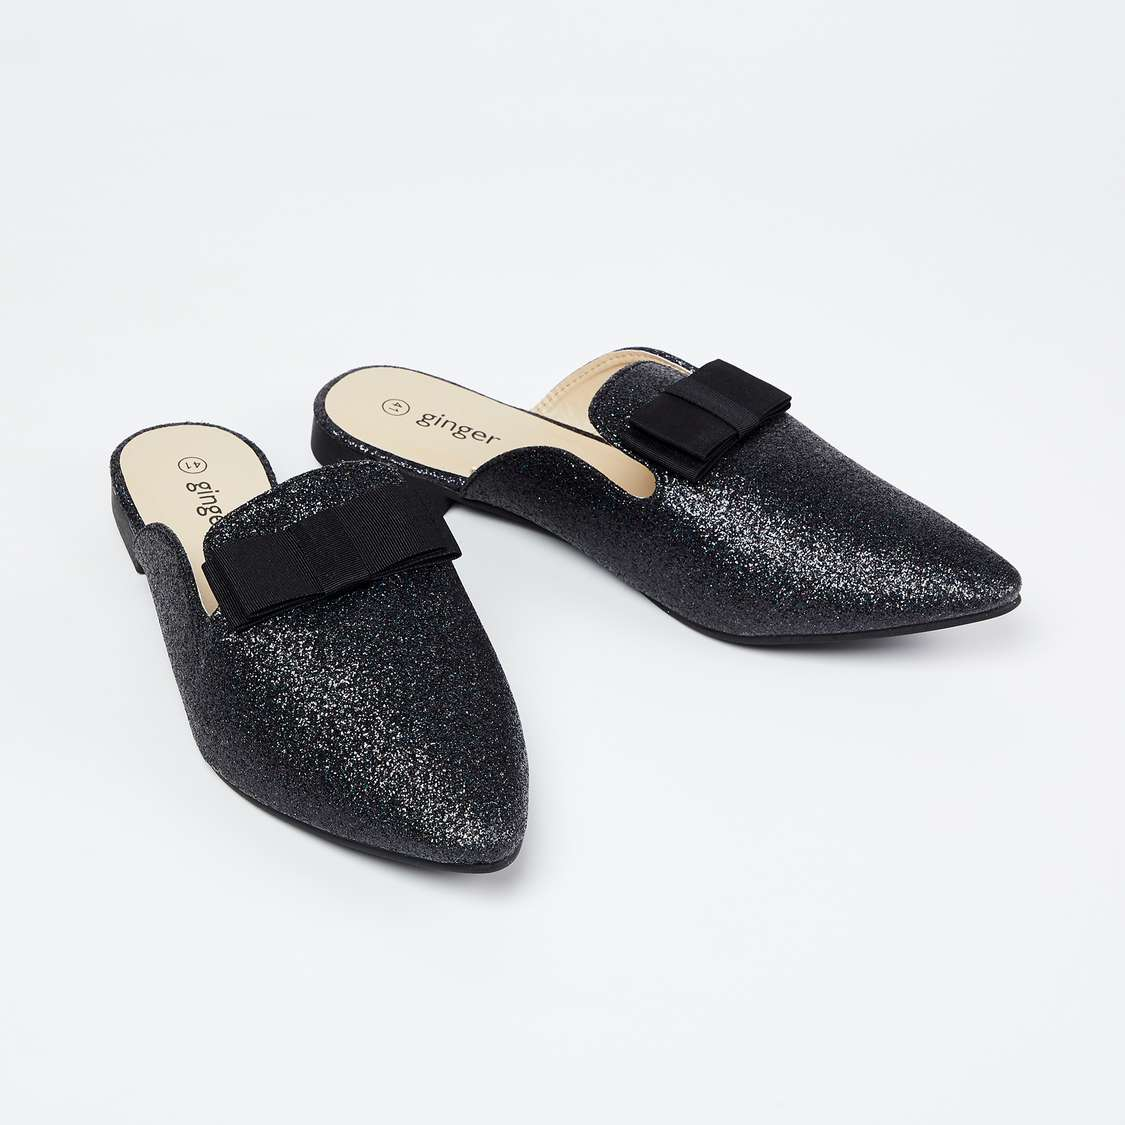 GINGER Shimmery Mules with Applique types of shoes for women